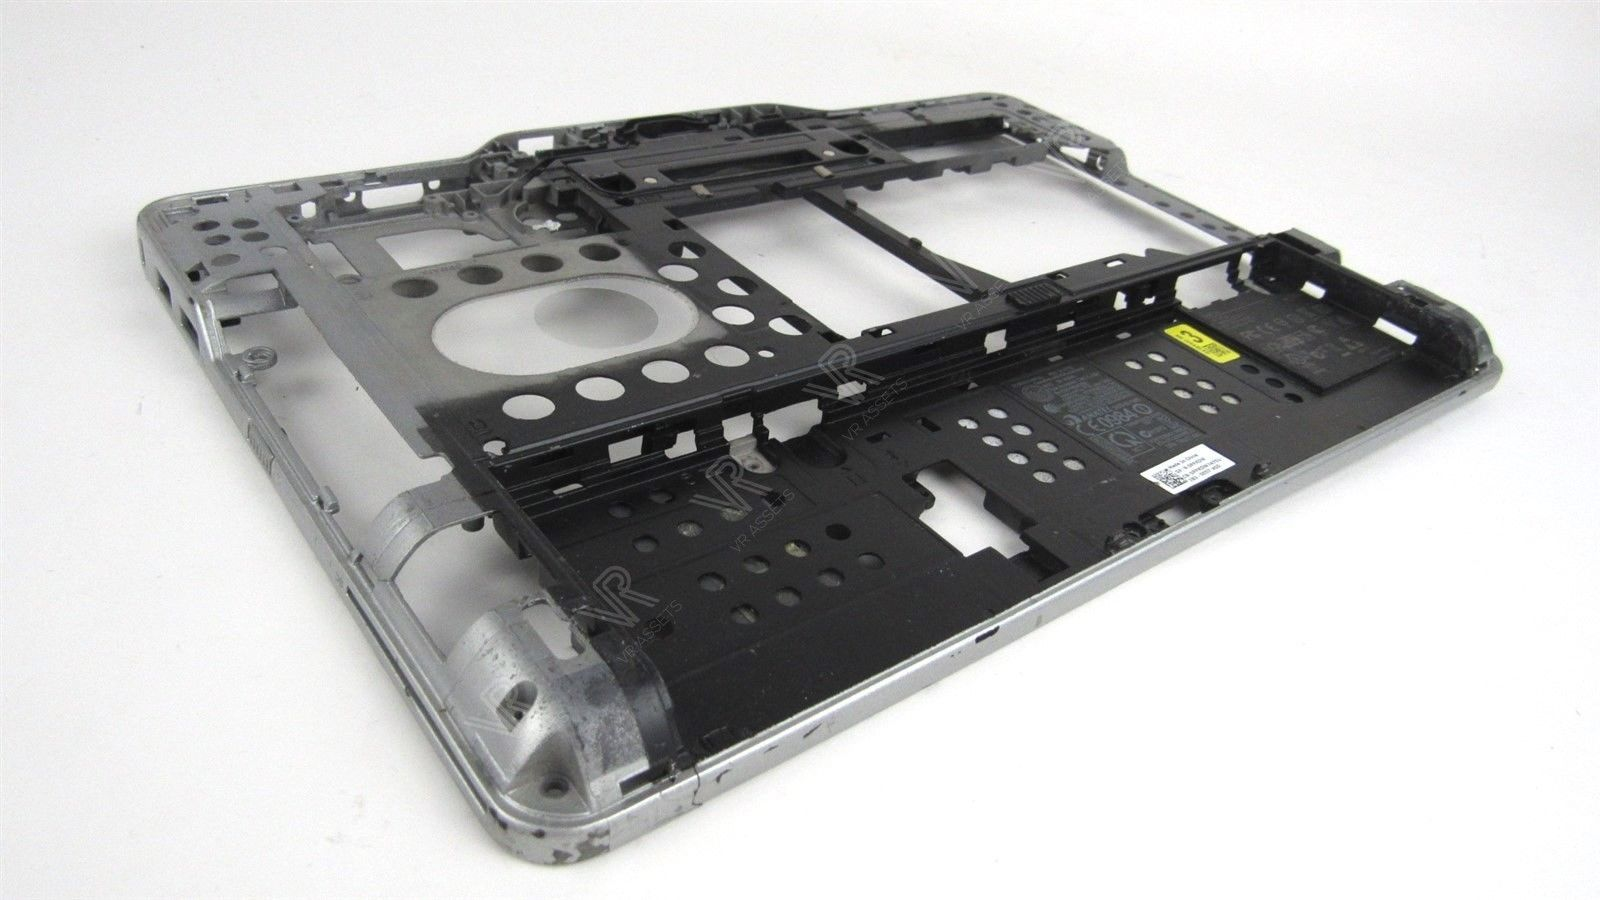 Dell Latitude XT3 Laptop Complete Bottom Base Assembly 71RW3 J7MXV J09NX 4NRX8